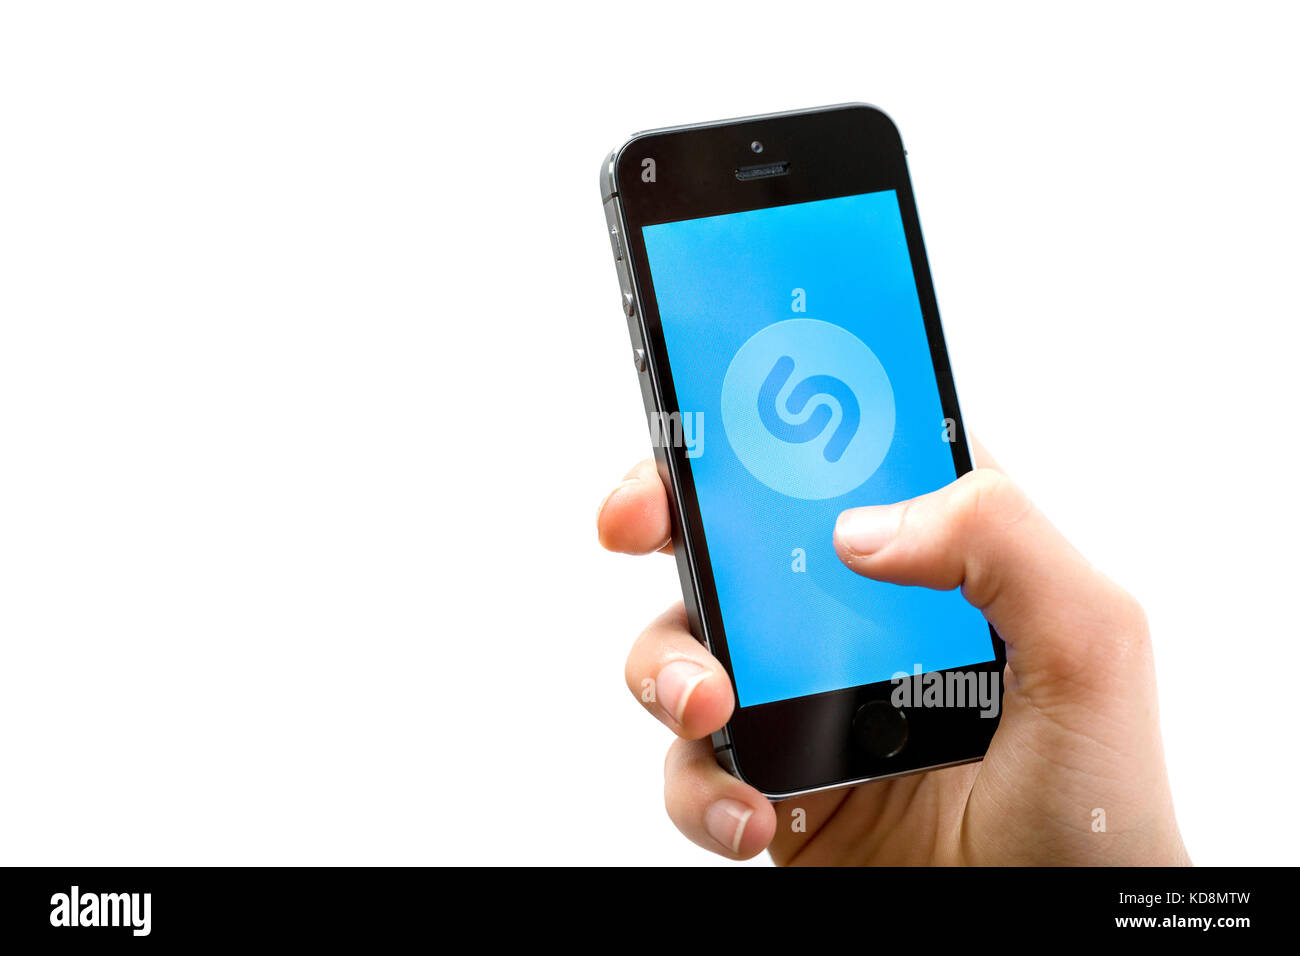 Shazam App on a mobile phone - Stock Image